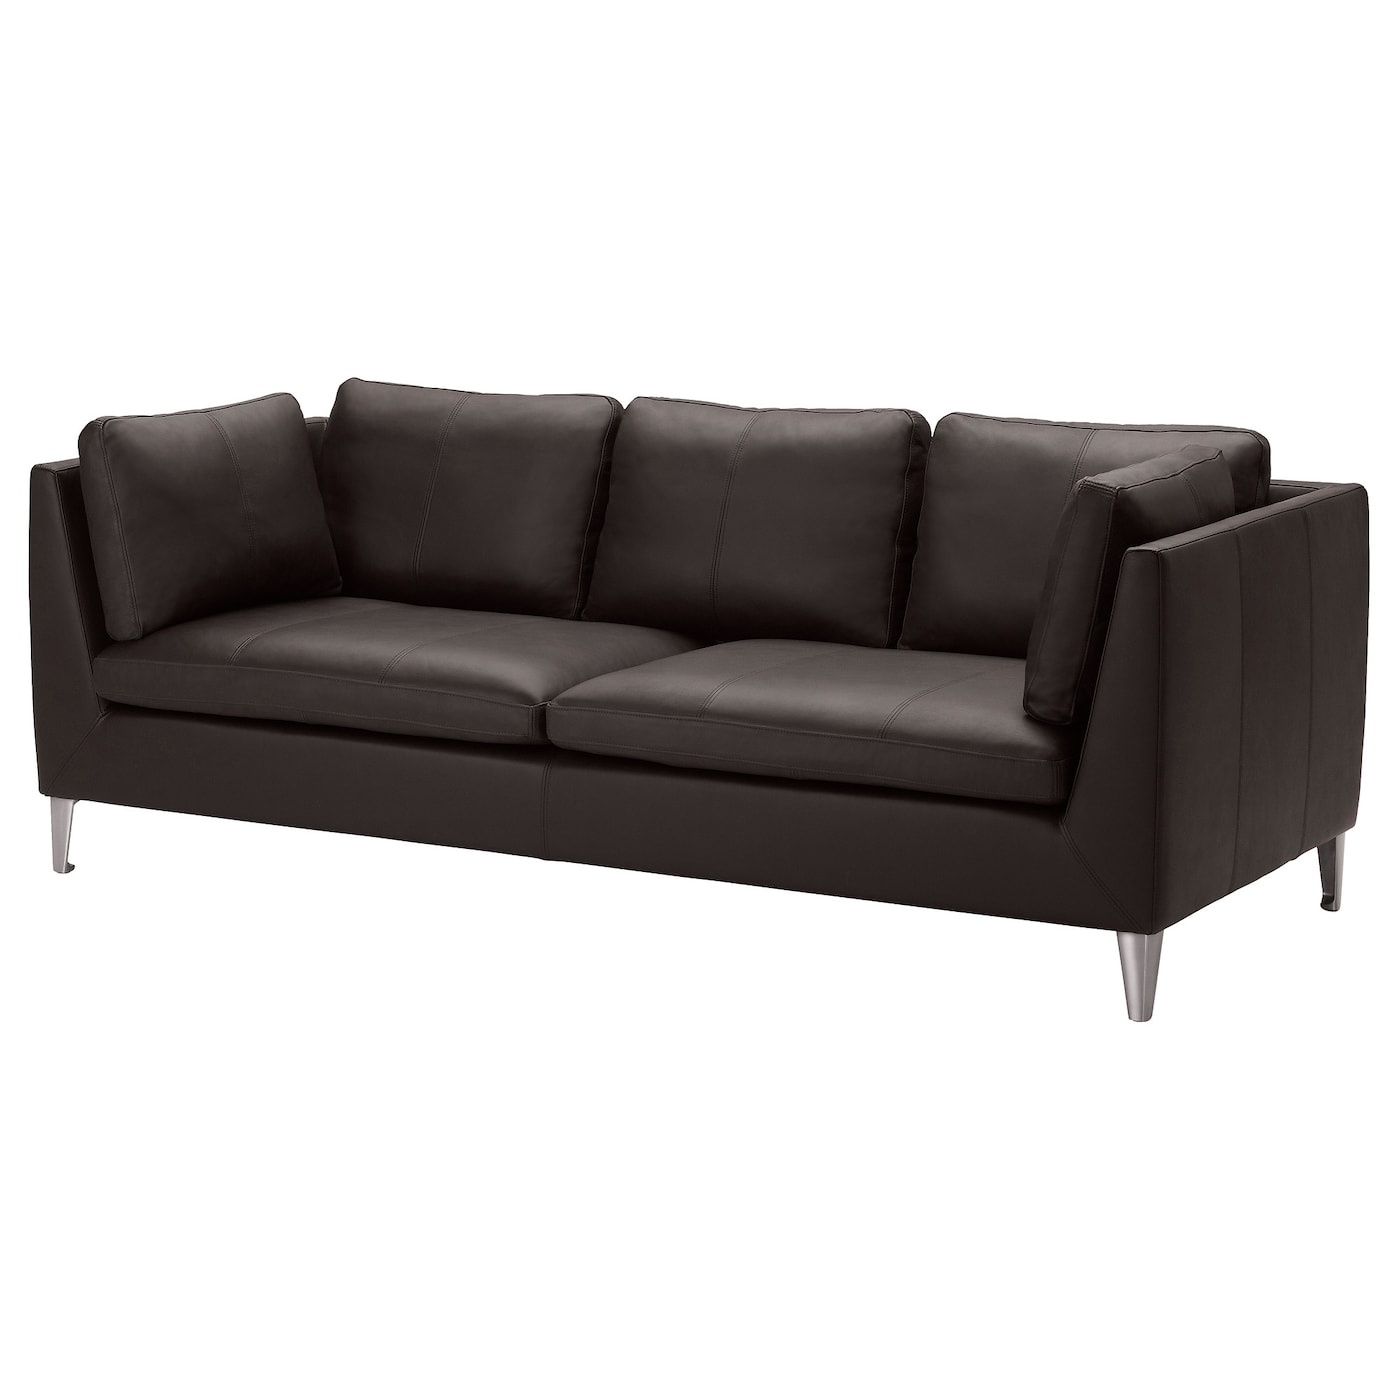 Stockholm three seat sofa seglora dark brown ikea for Canape ikea cuir